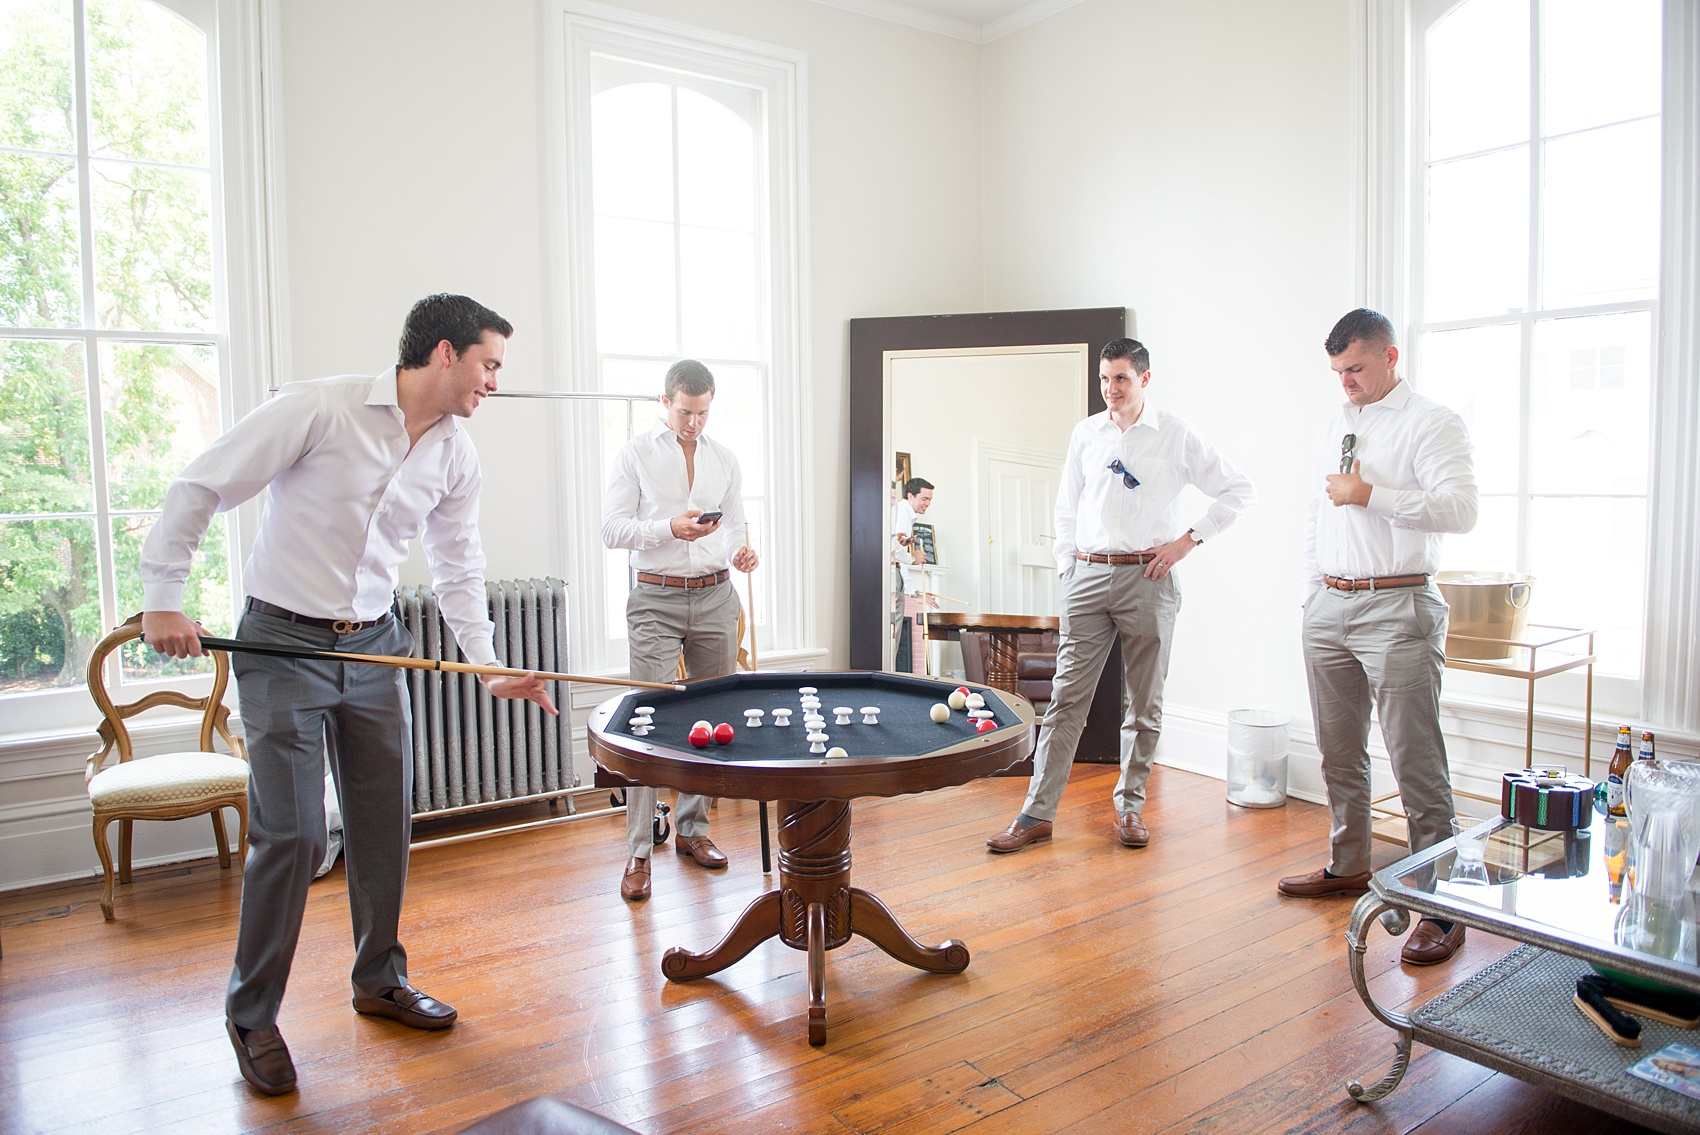 Mikkel Paige Photography wedding photos at The Merrimon-Wynne House in downtown Raleigh. The groom and his groomsmen relax and play table pool before the ceremony.